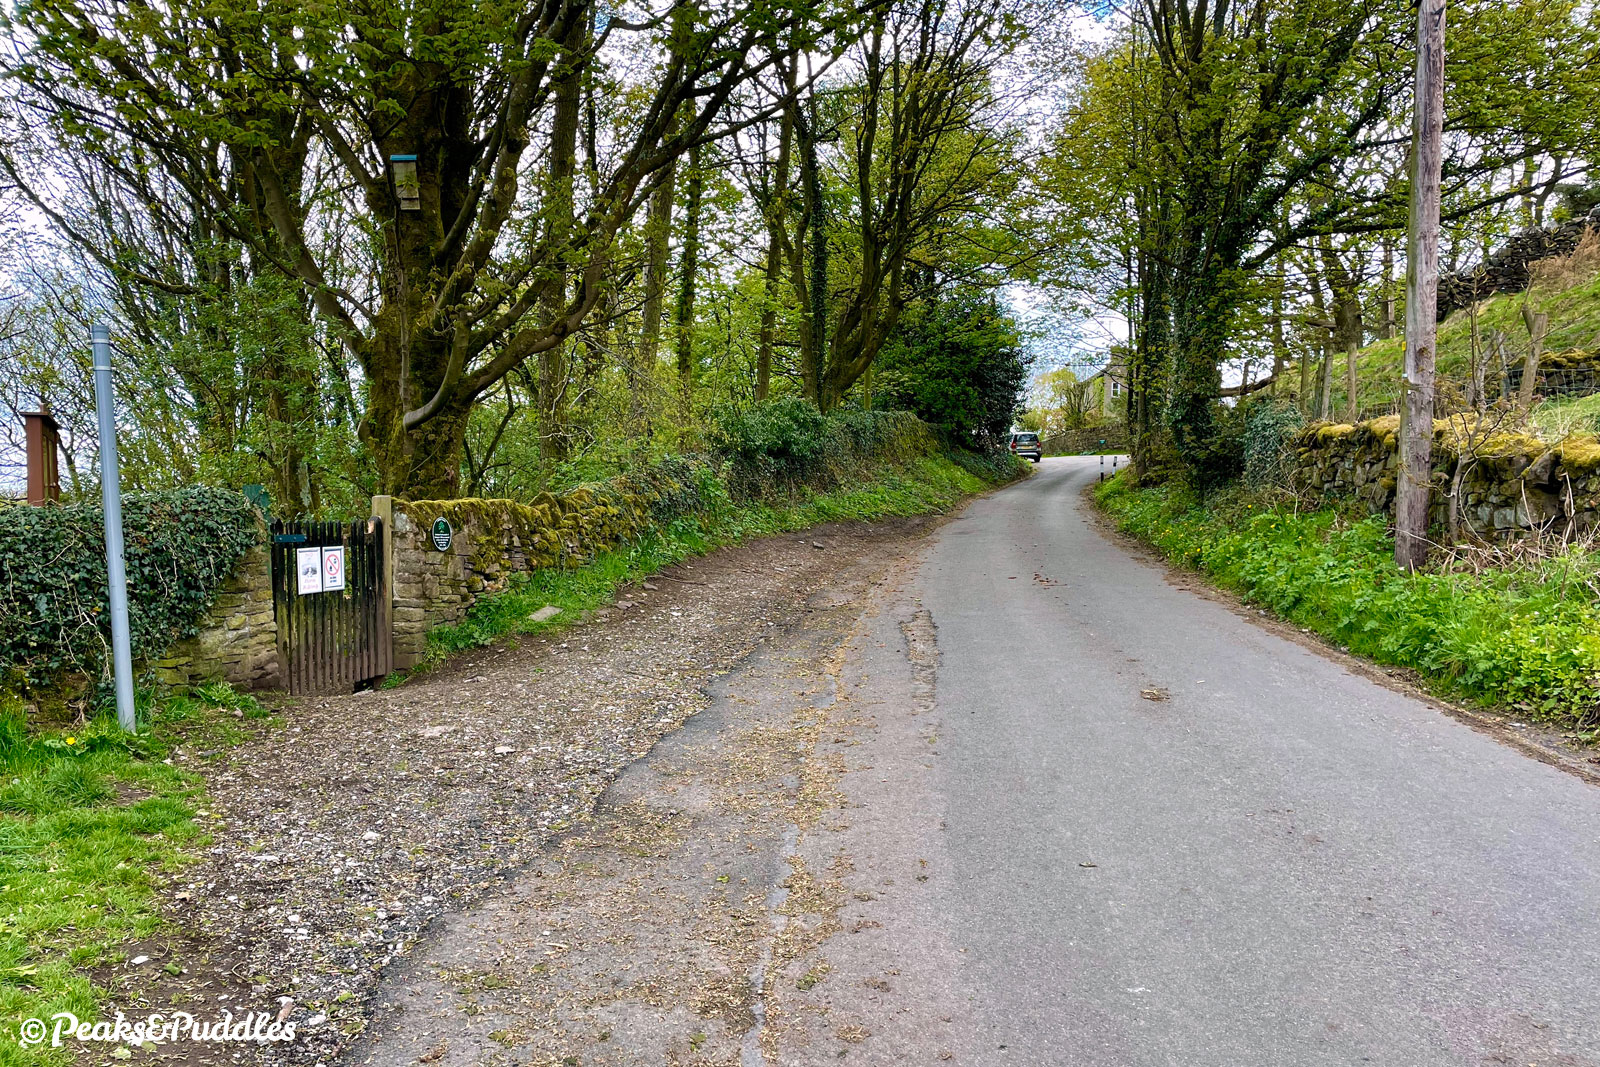 Stubbins Lane has some of Chinley's oldest houses, built long before its railways and other industry.